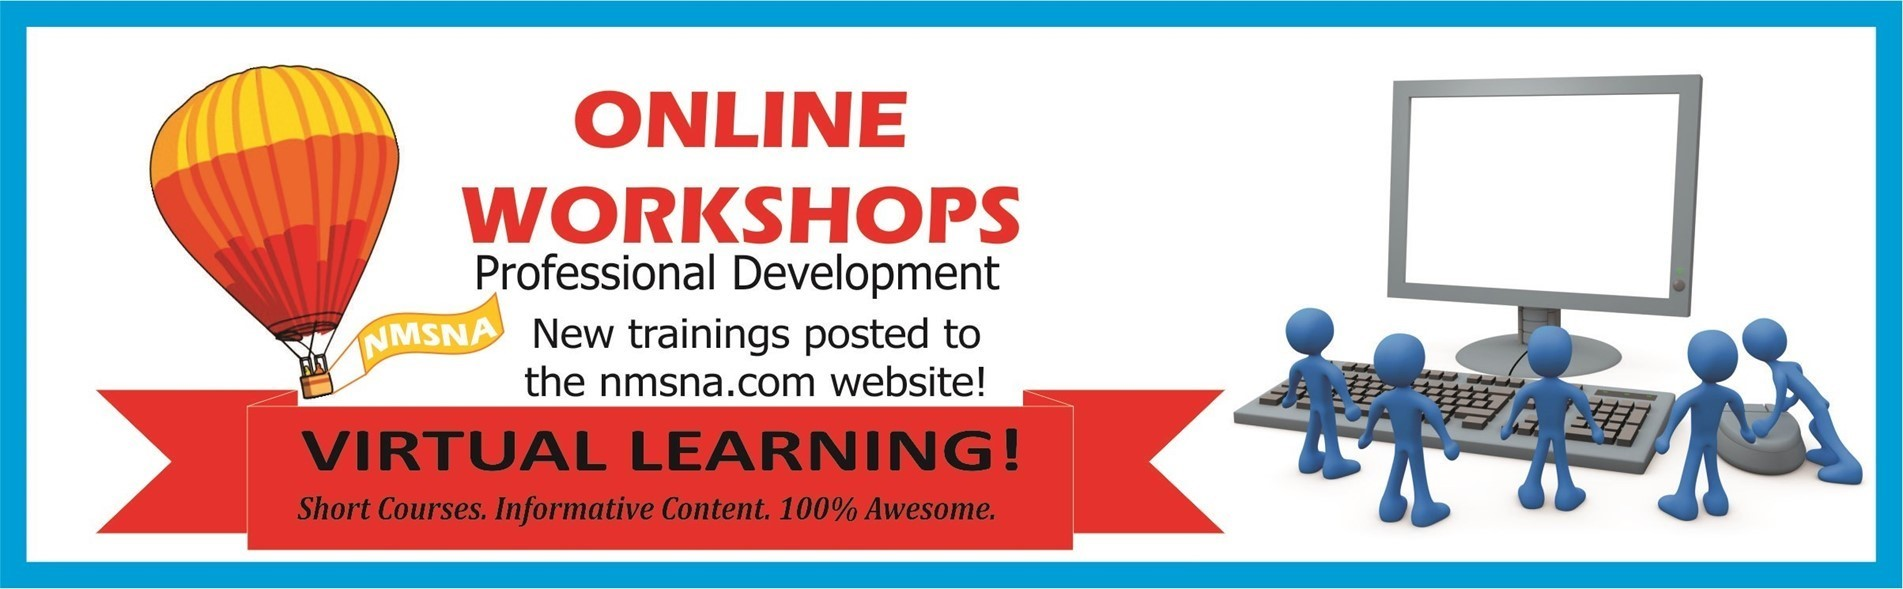 NMSNA Virtual Training Center